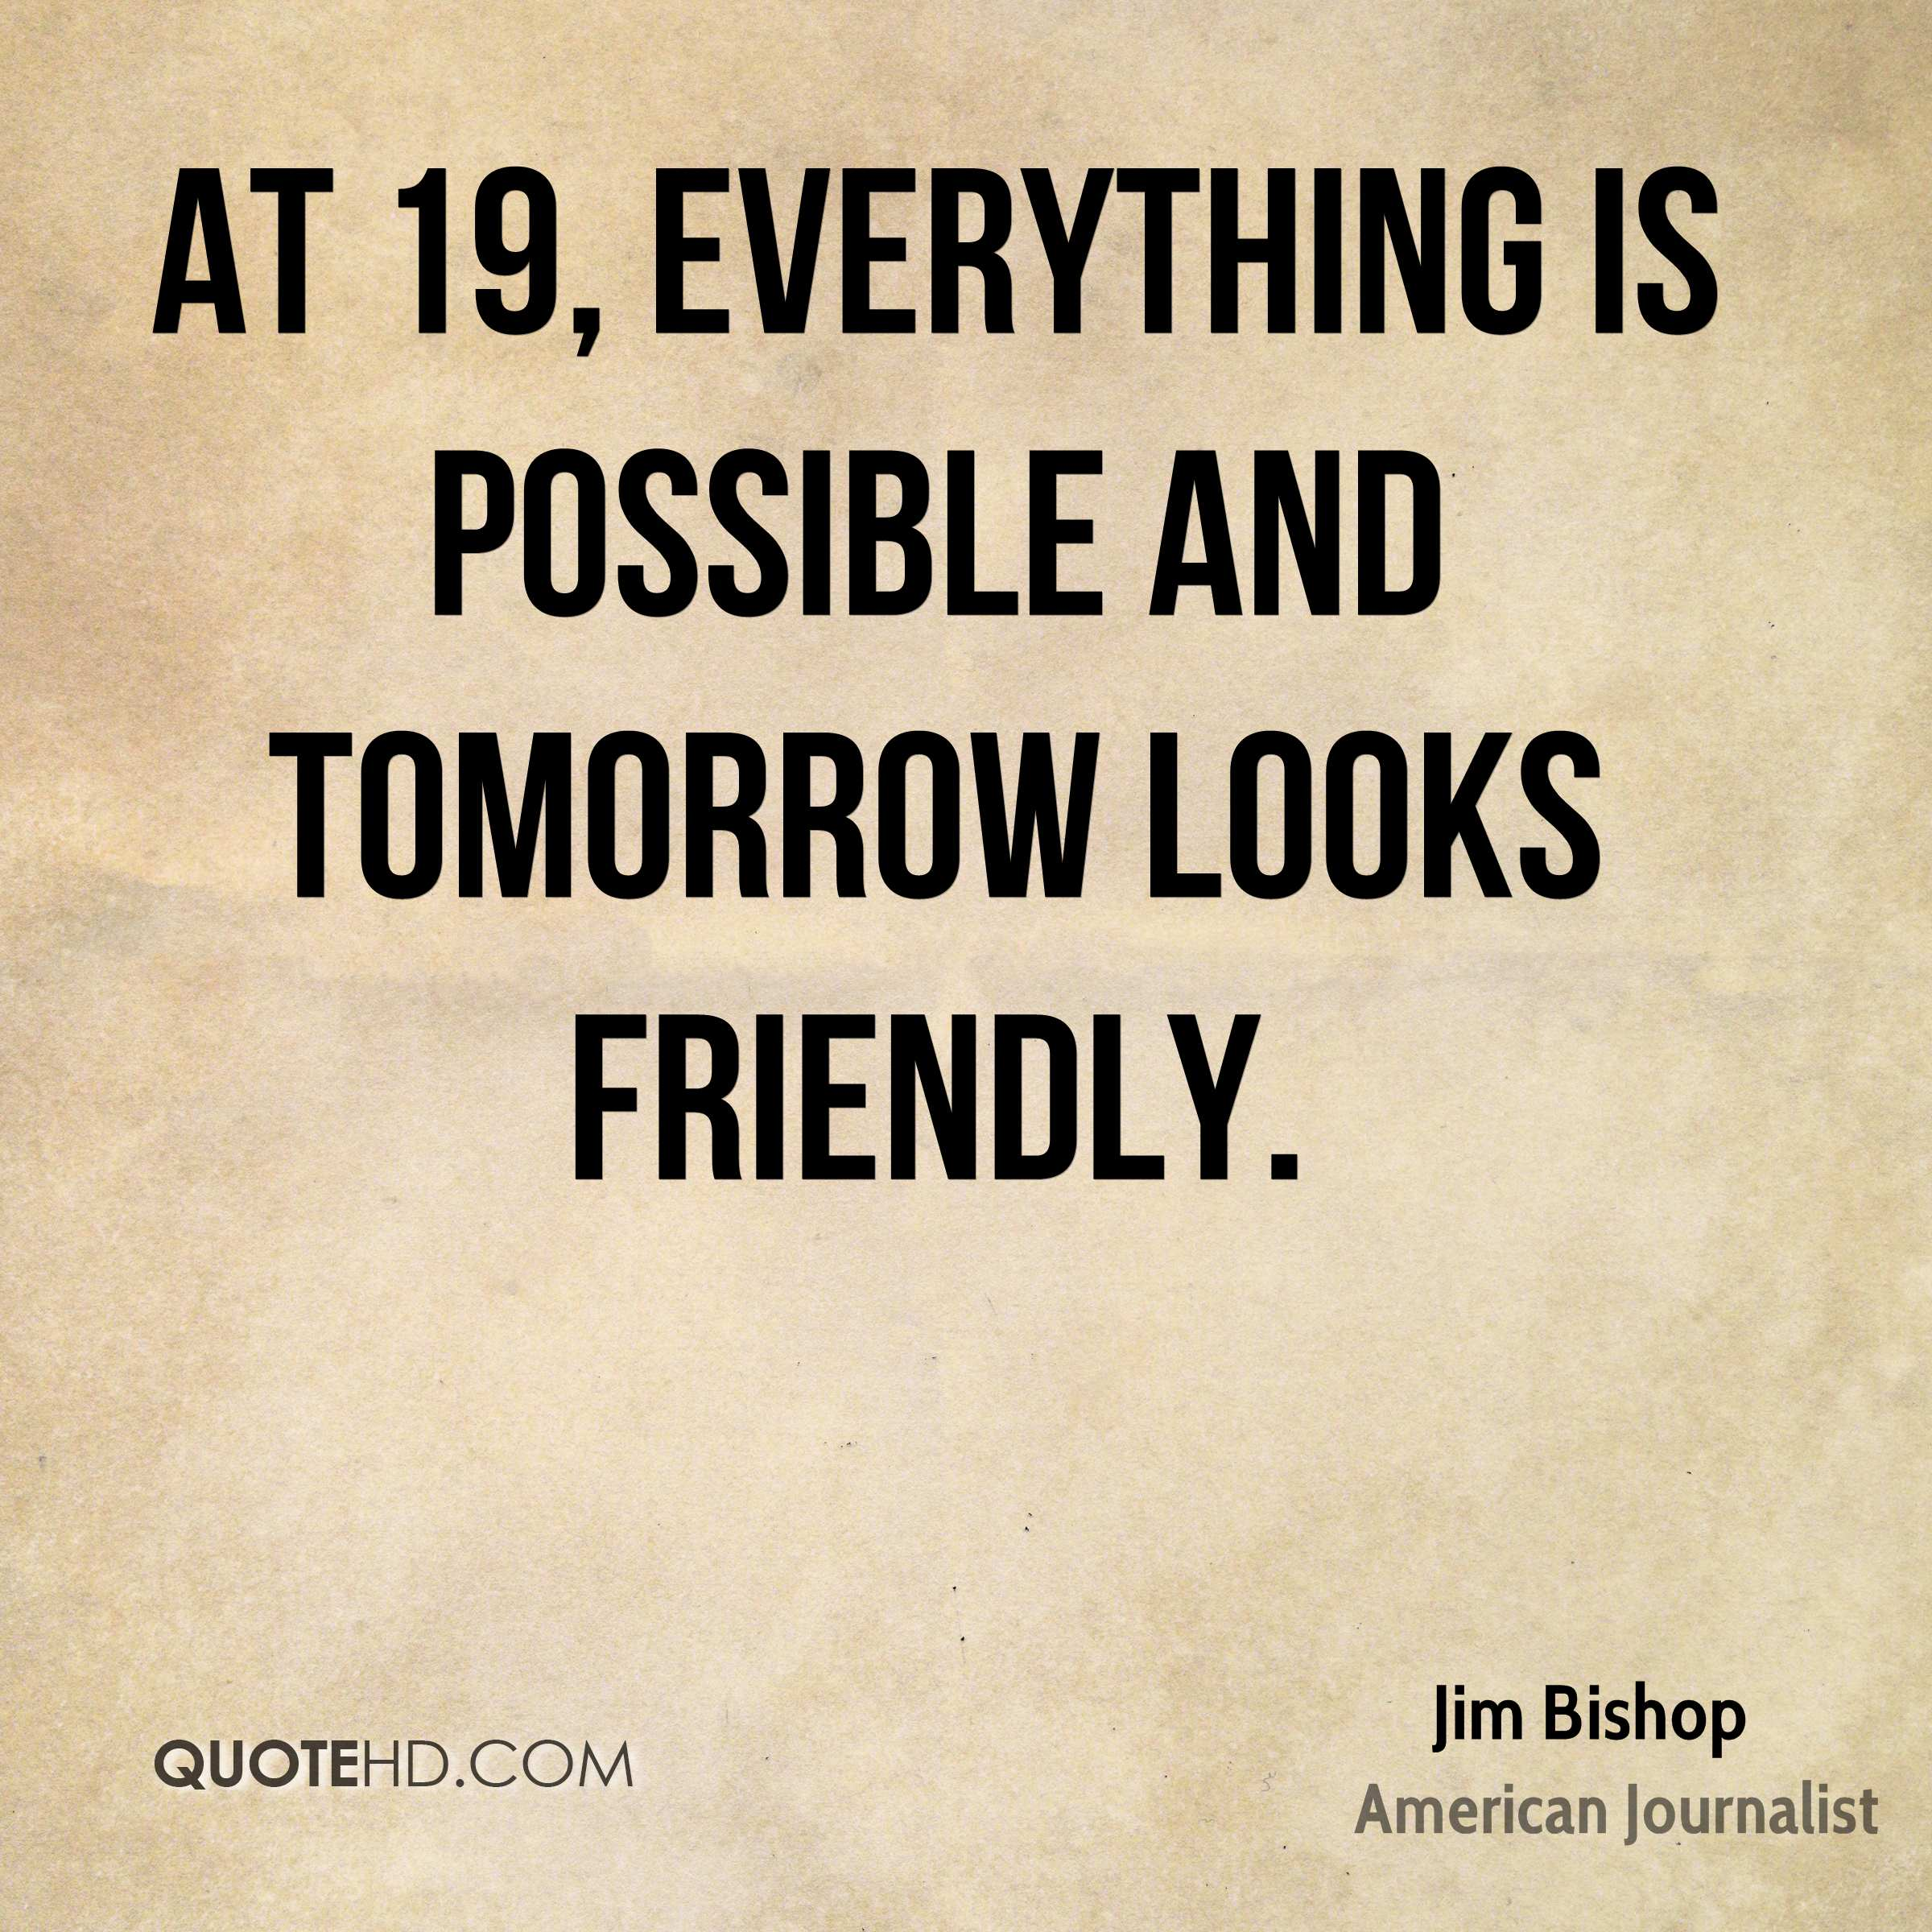 At 19, everything is possible and tomorrow looks friendly.